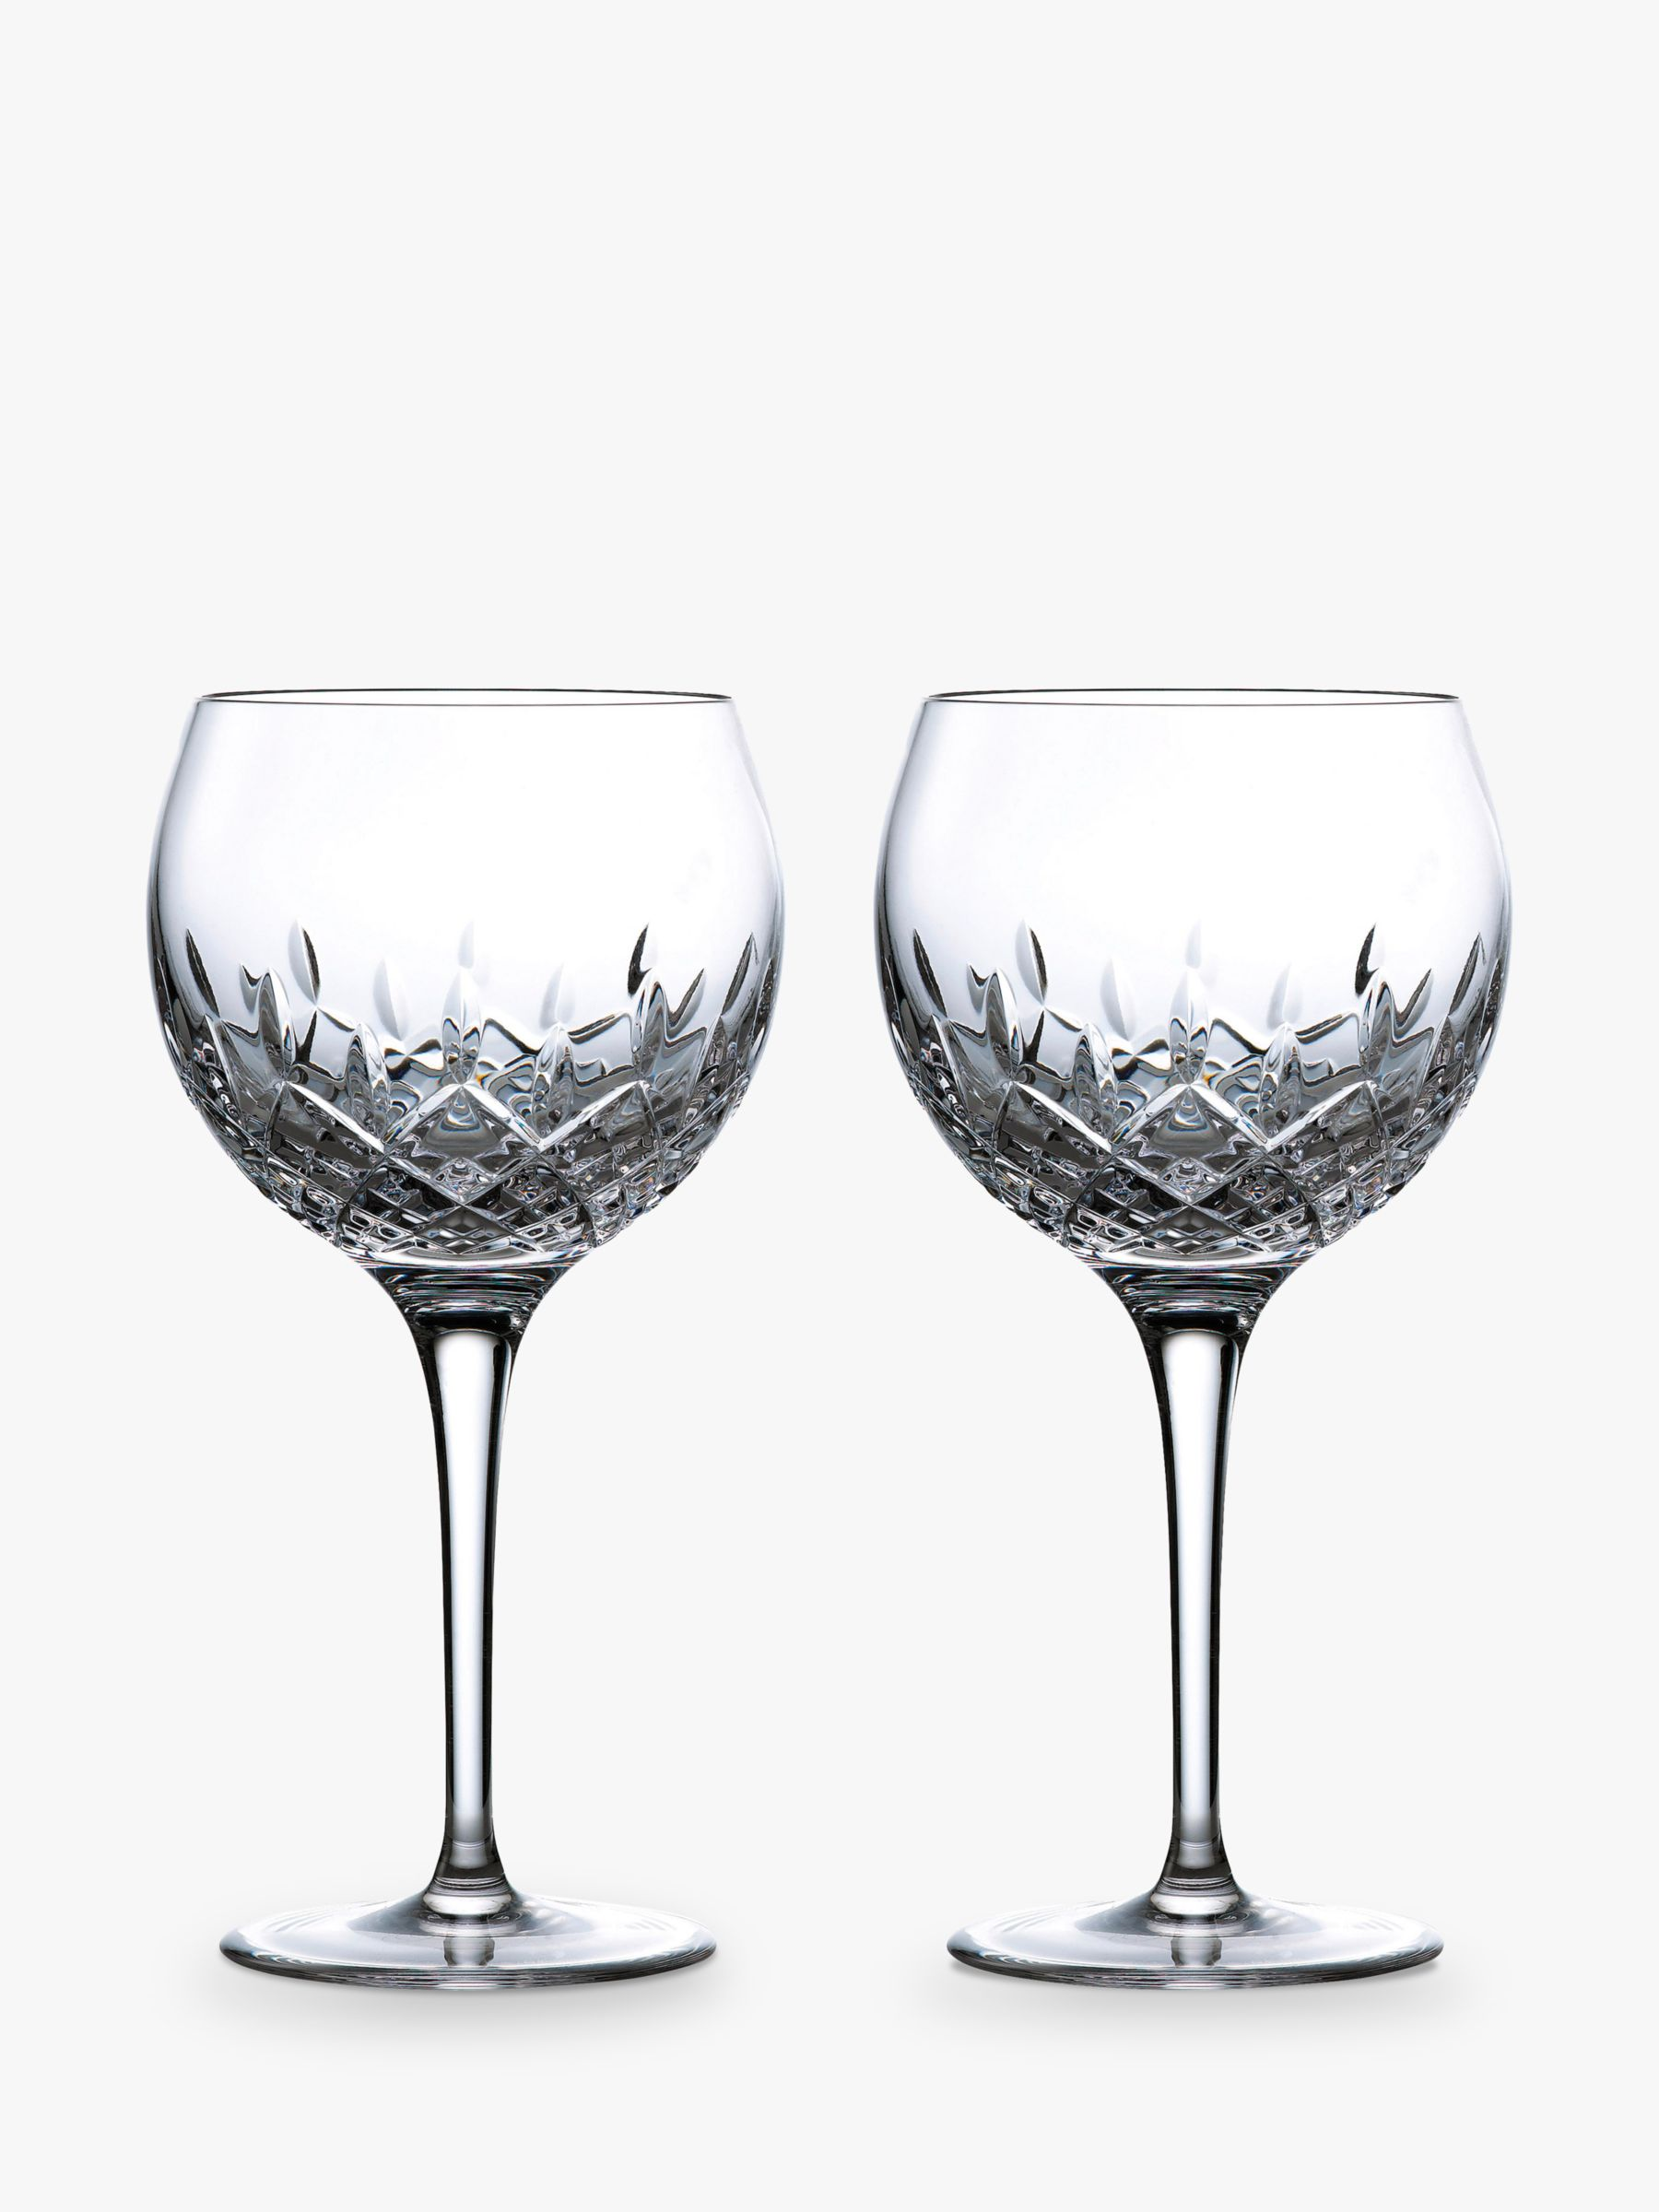 Royal Doulton Royal Doulton R&D Collection Highclere Crystal Gin Glasses, Set of 2, 560ml, Clear